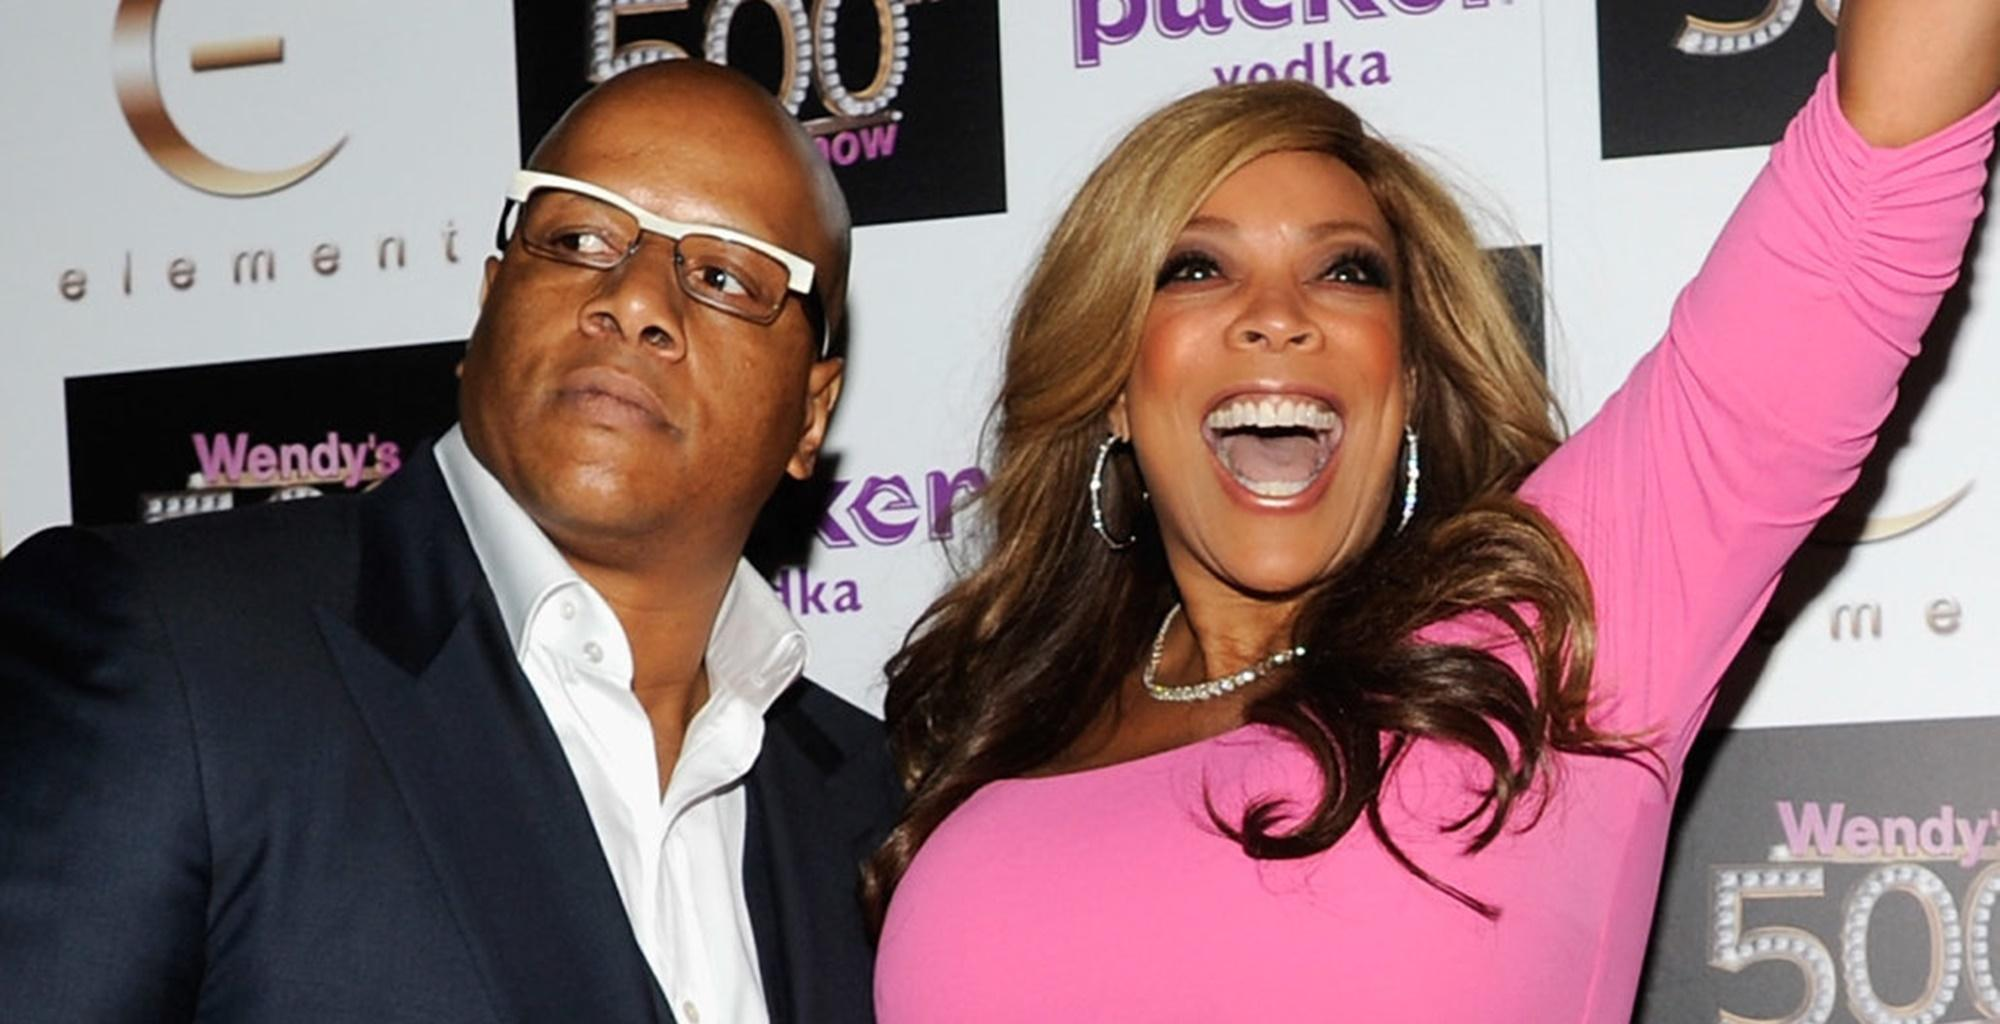 Wendy Williams Was Hospitalized After Husband Kevin Hunter Welcomed A Baby With Alleged Mistress Sharina Hudson -- Will This Lead To A Divorce?